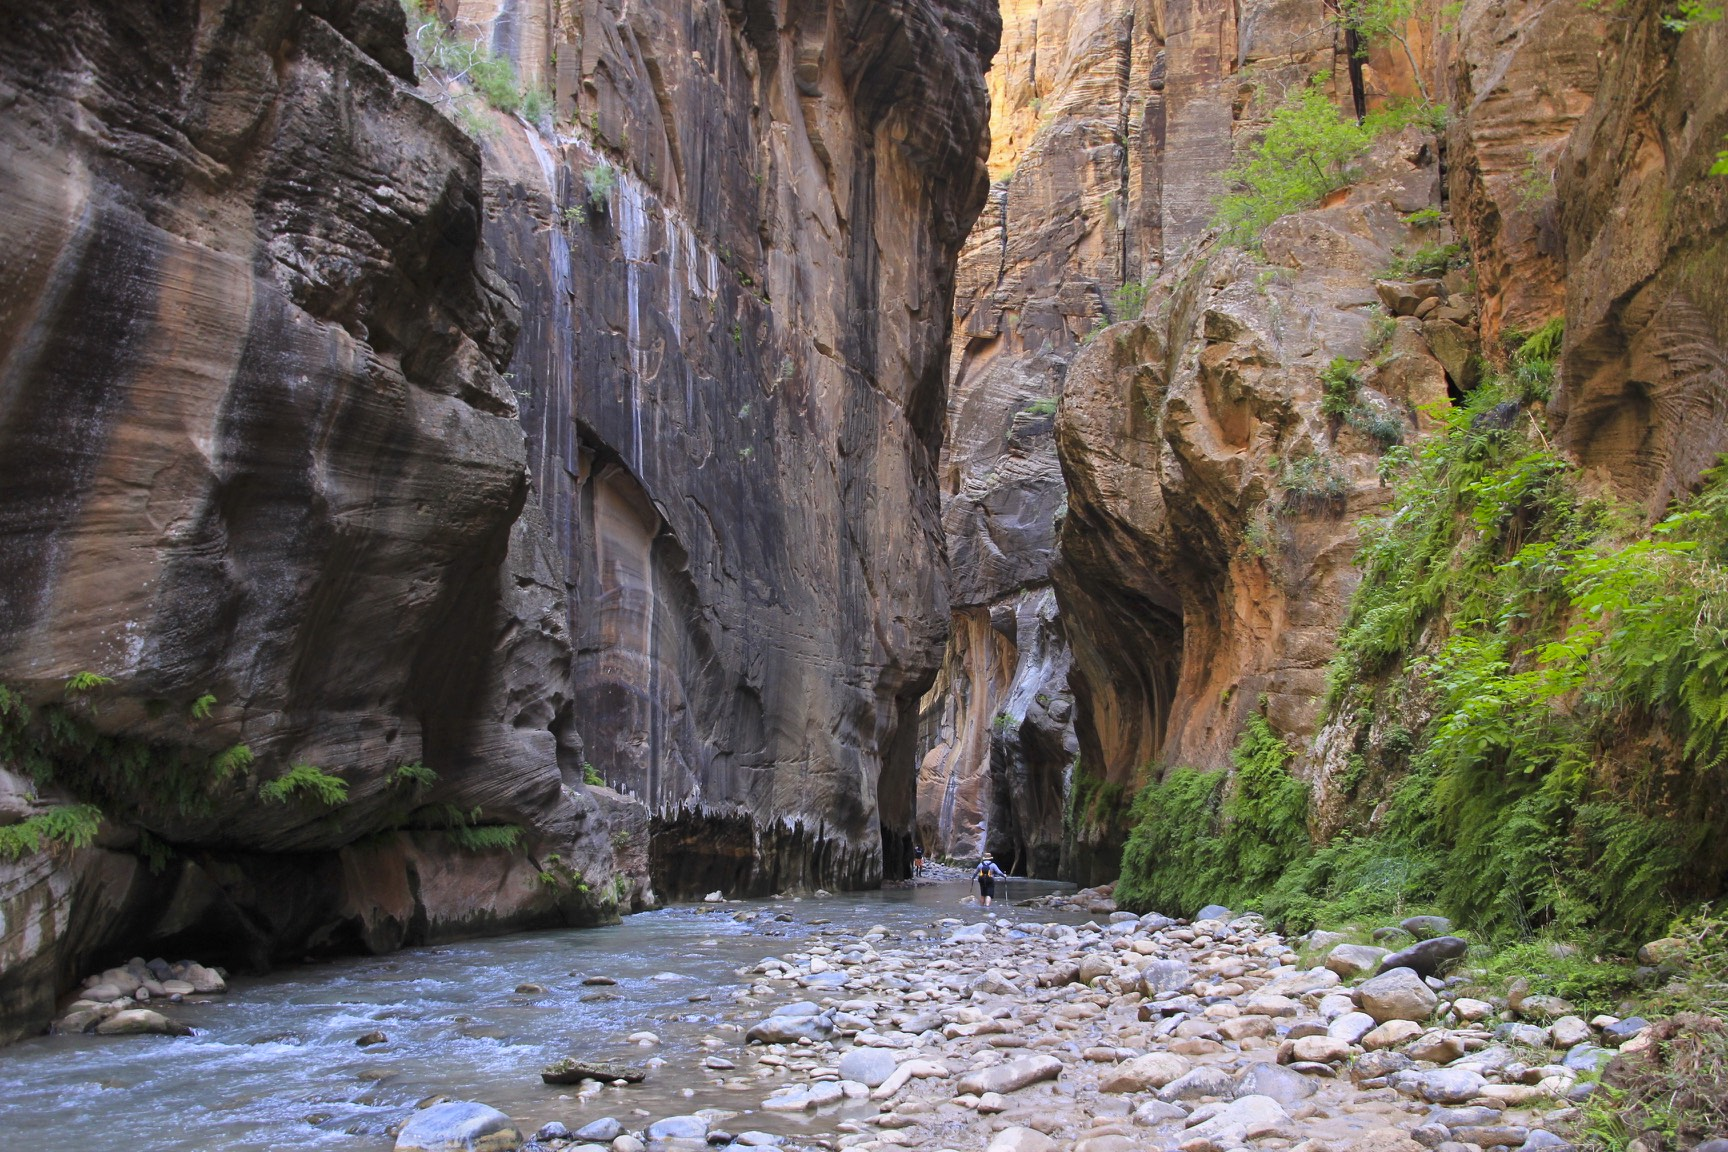 Hiking the Narrows of the Virgin River in the Zion NP